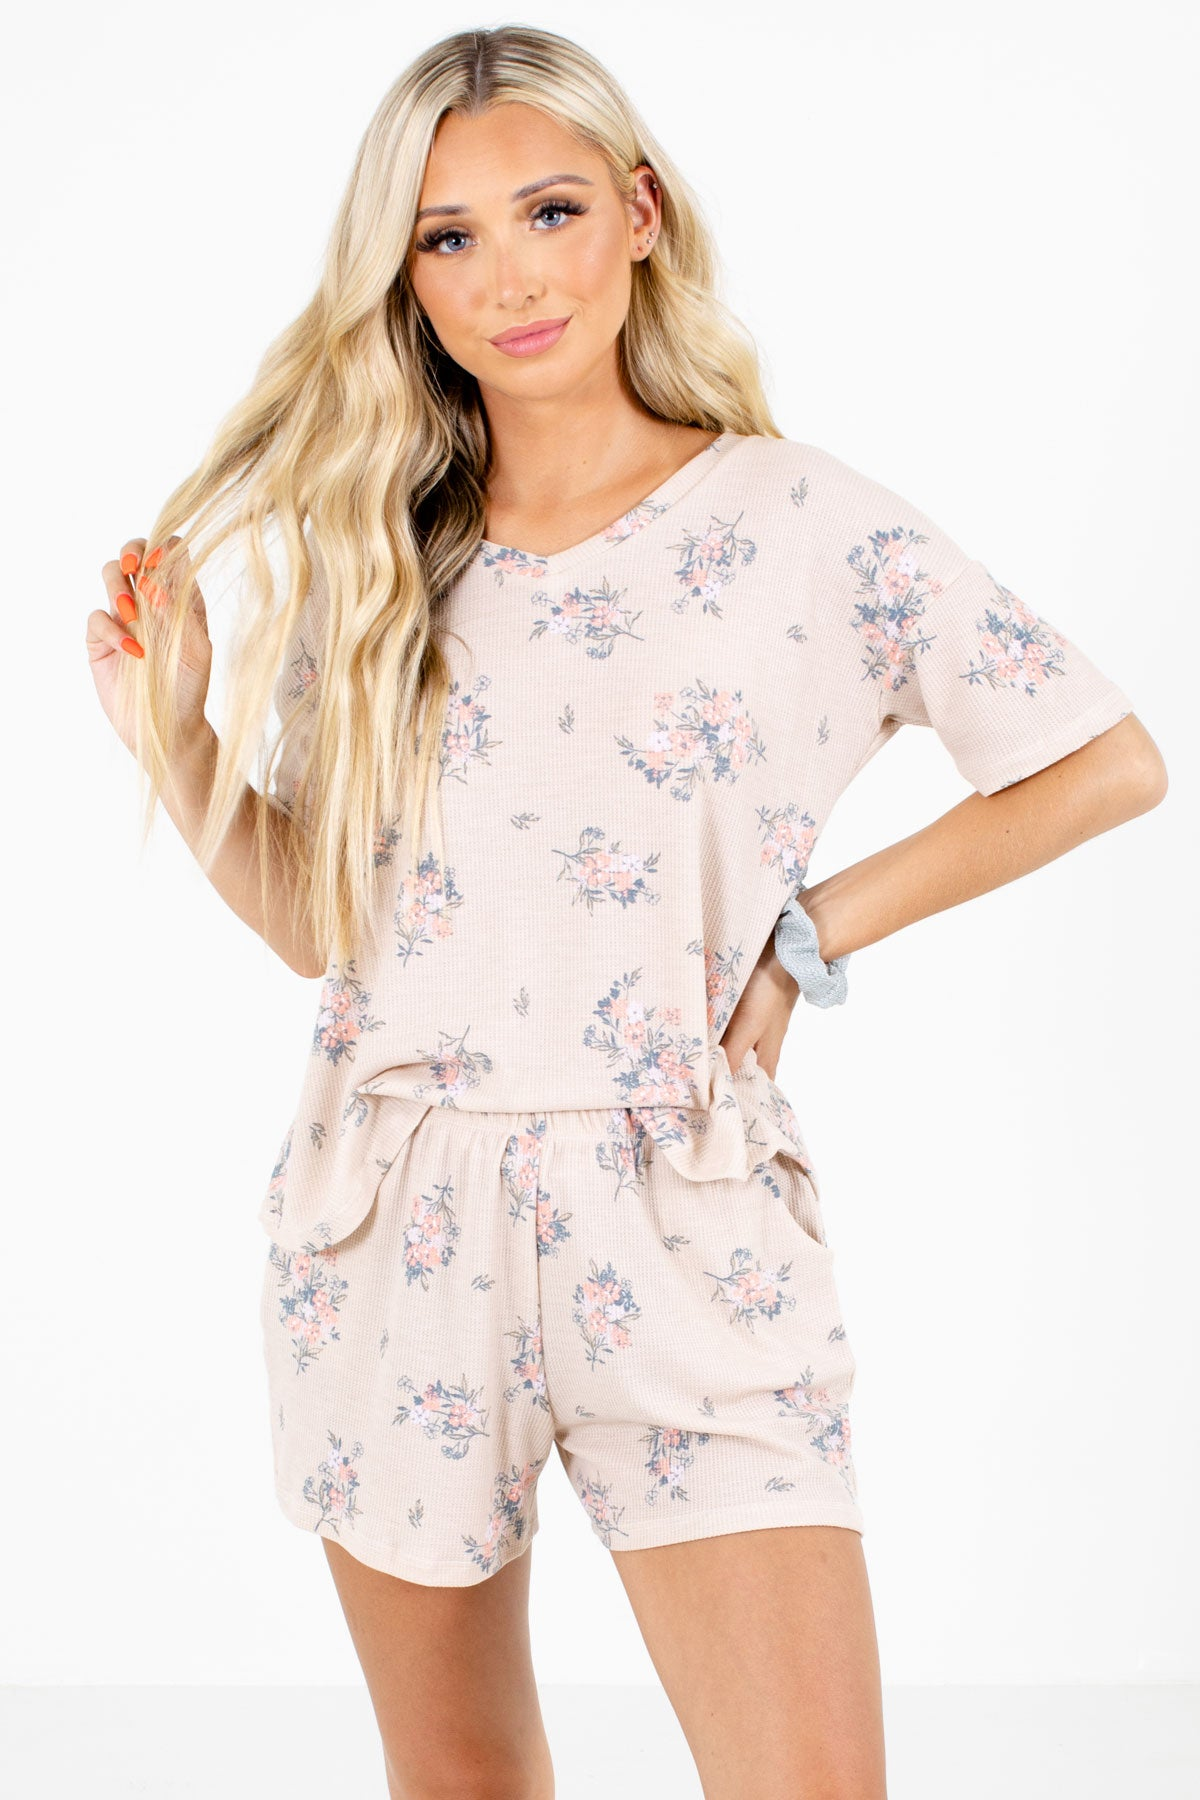 Taupe Multicolored Floral Patterned Boutique Two-Piece Sets for Women